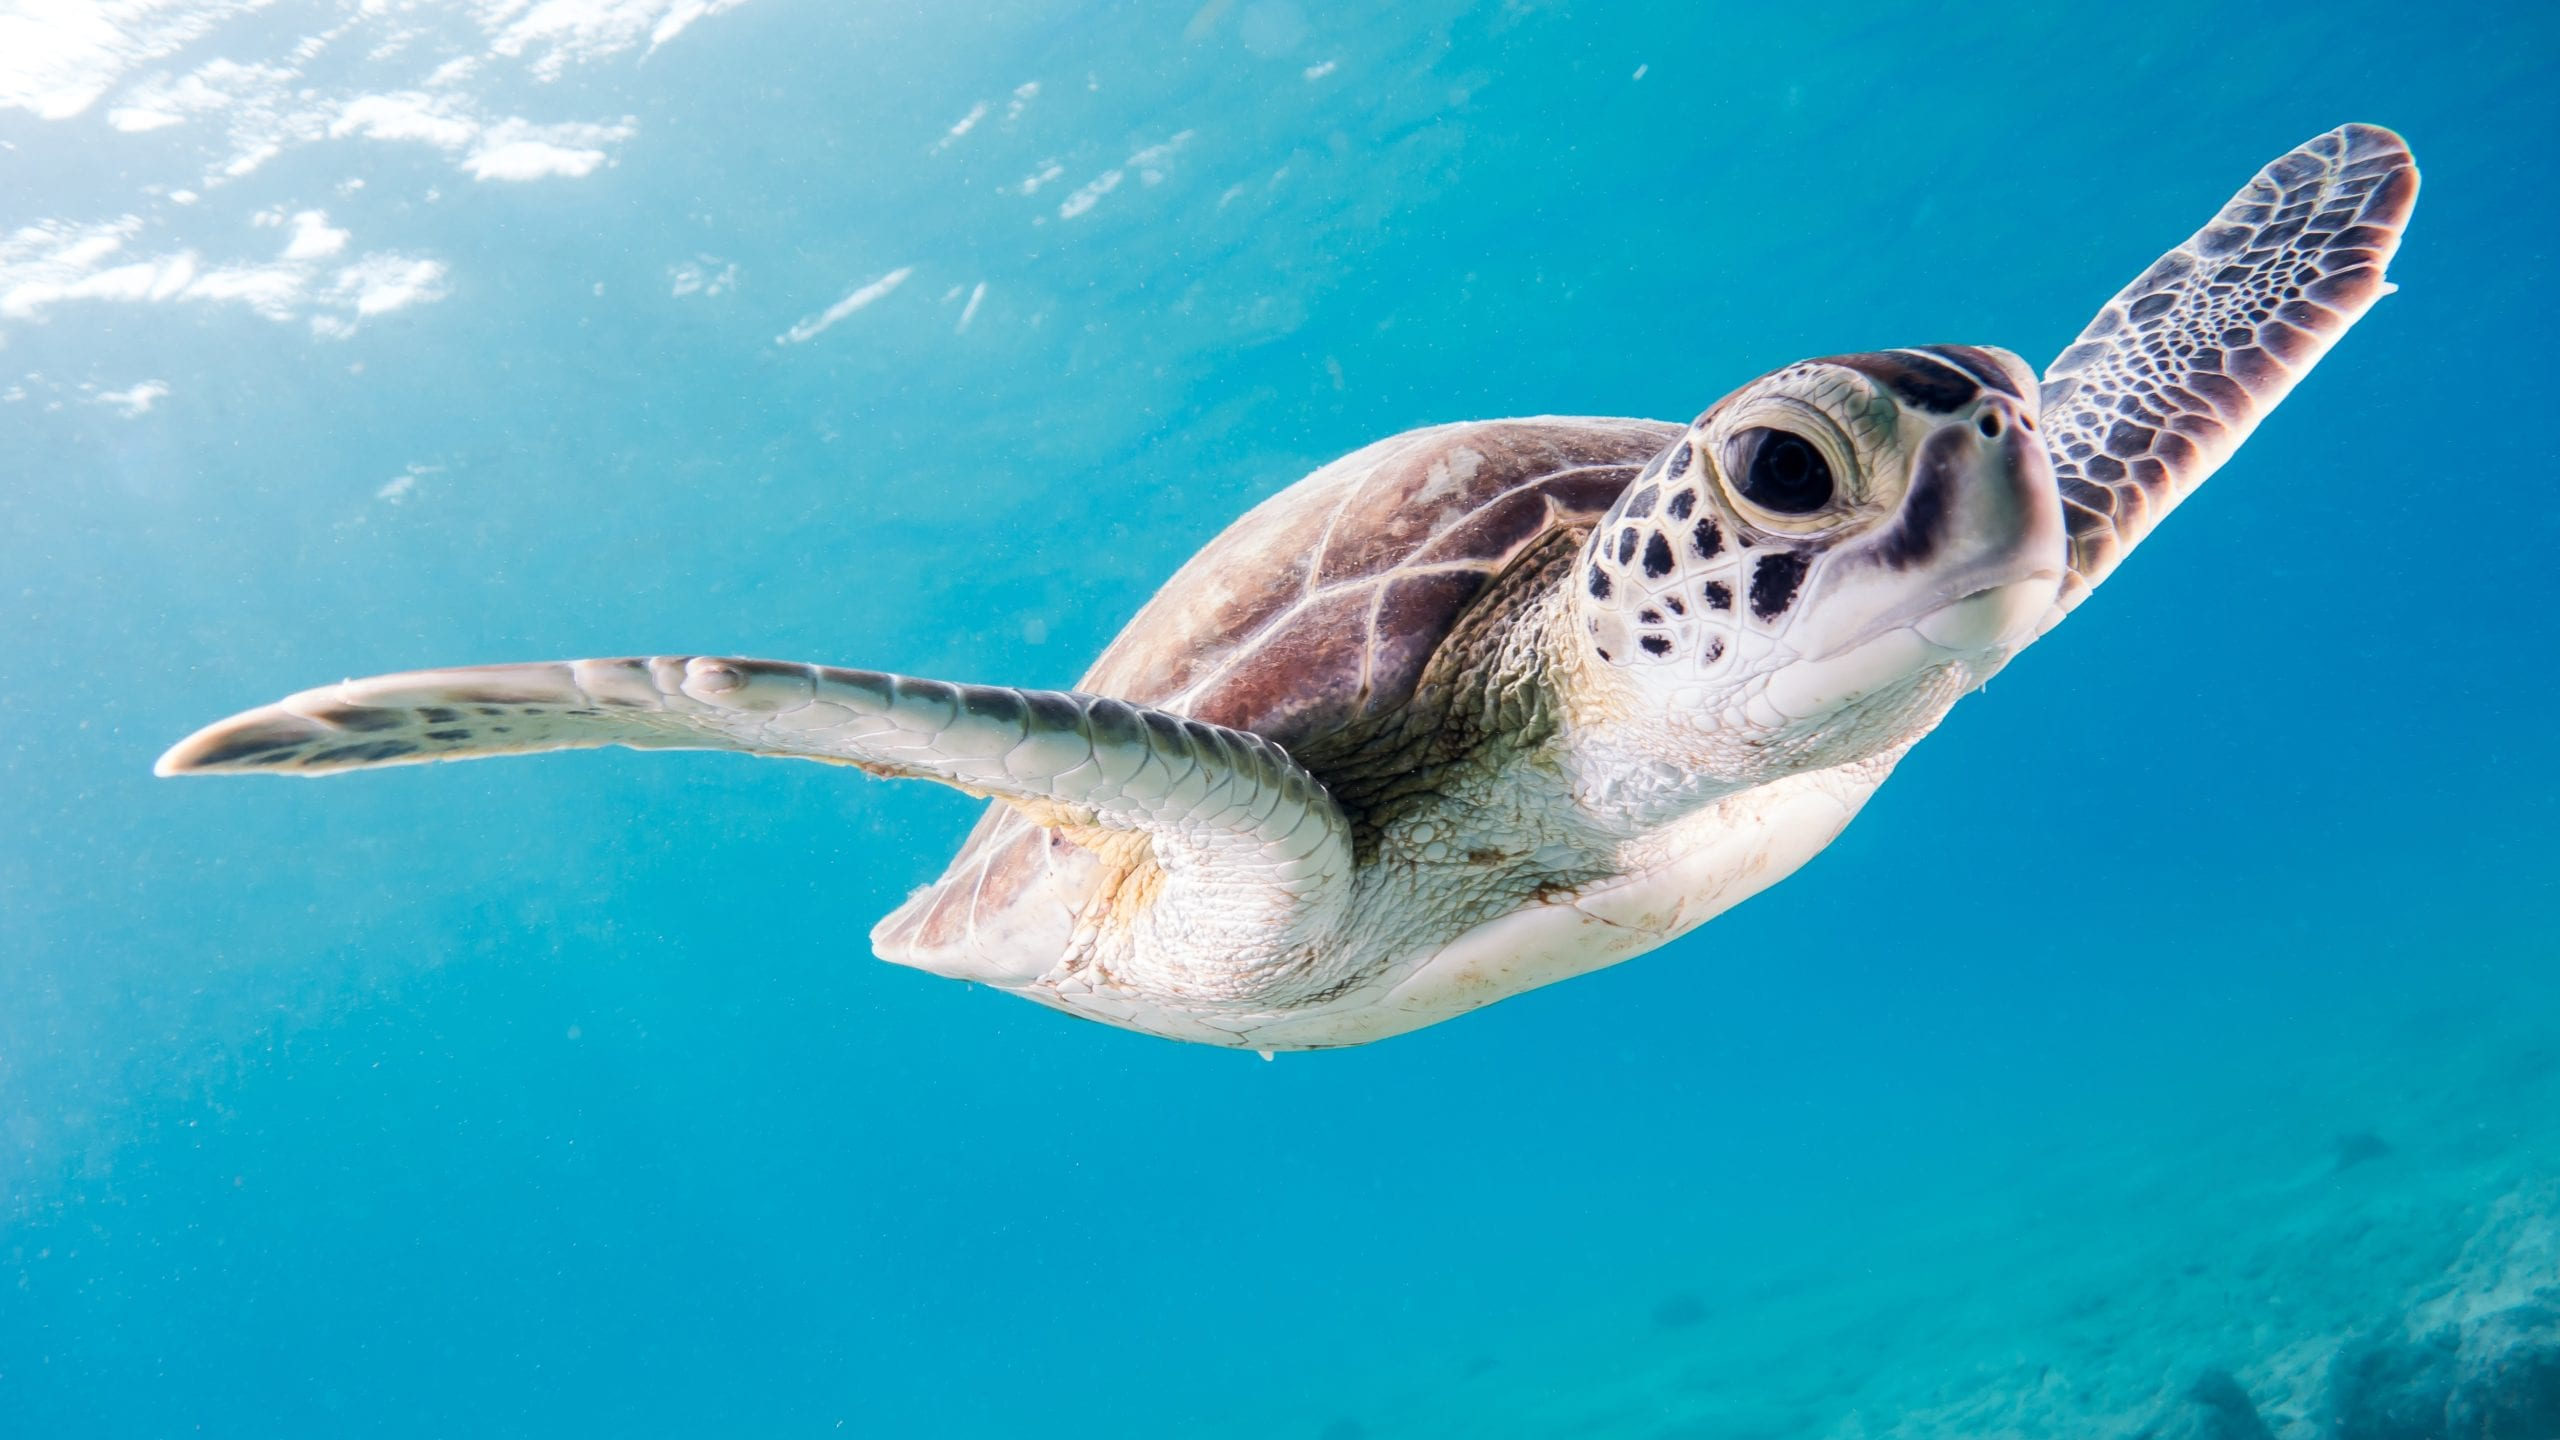 How to Build an Ocean Advocate Brand with Sea Turtle Conservation as Purpose